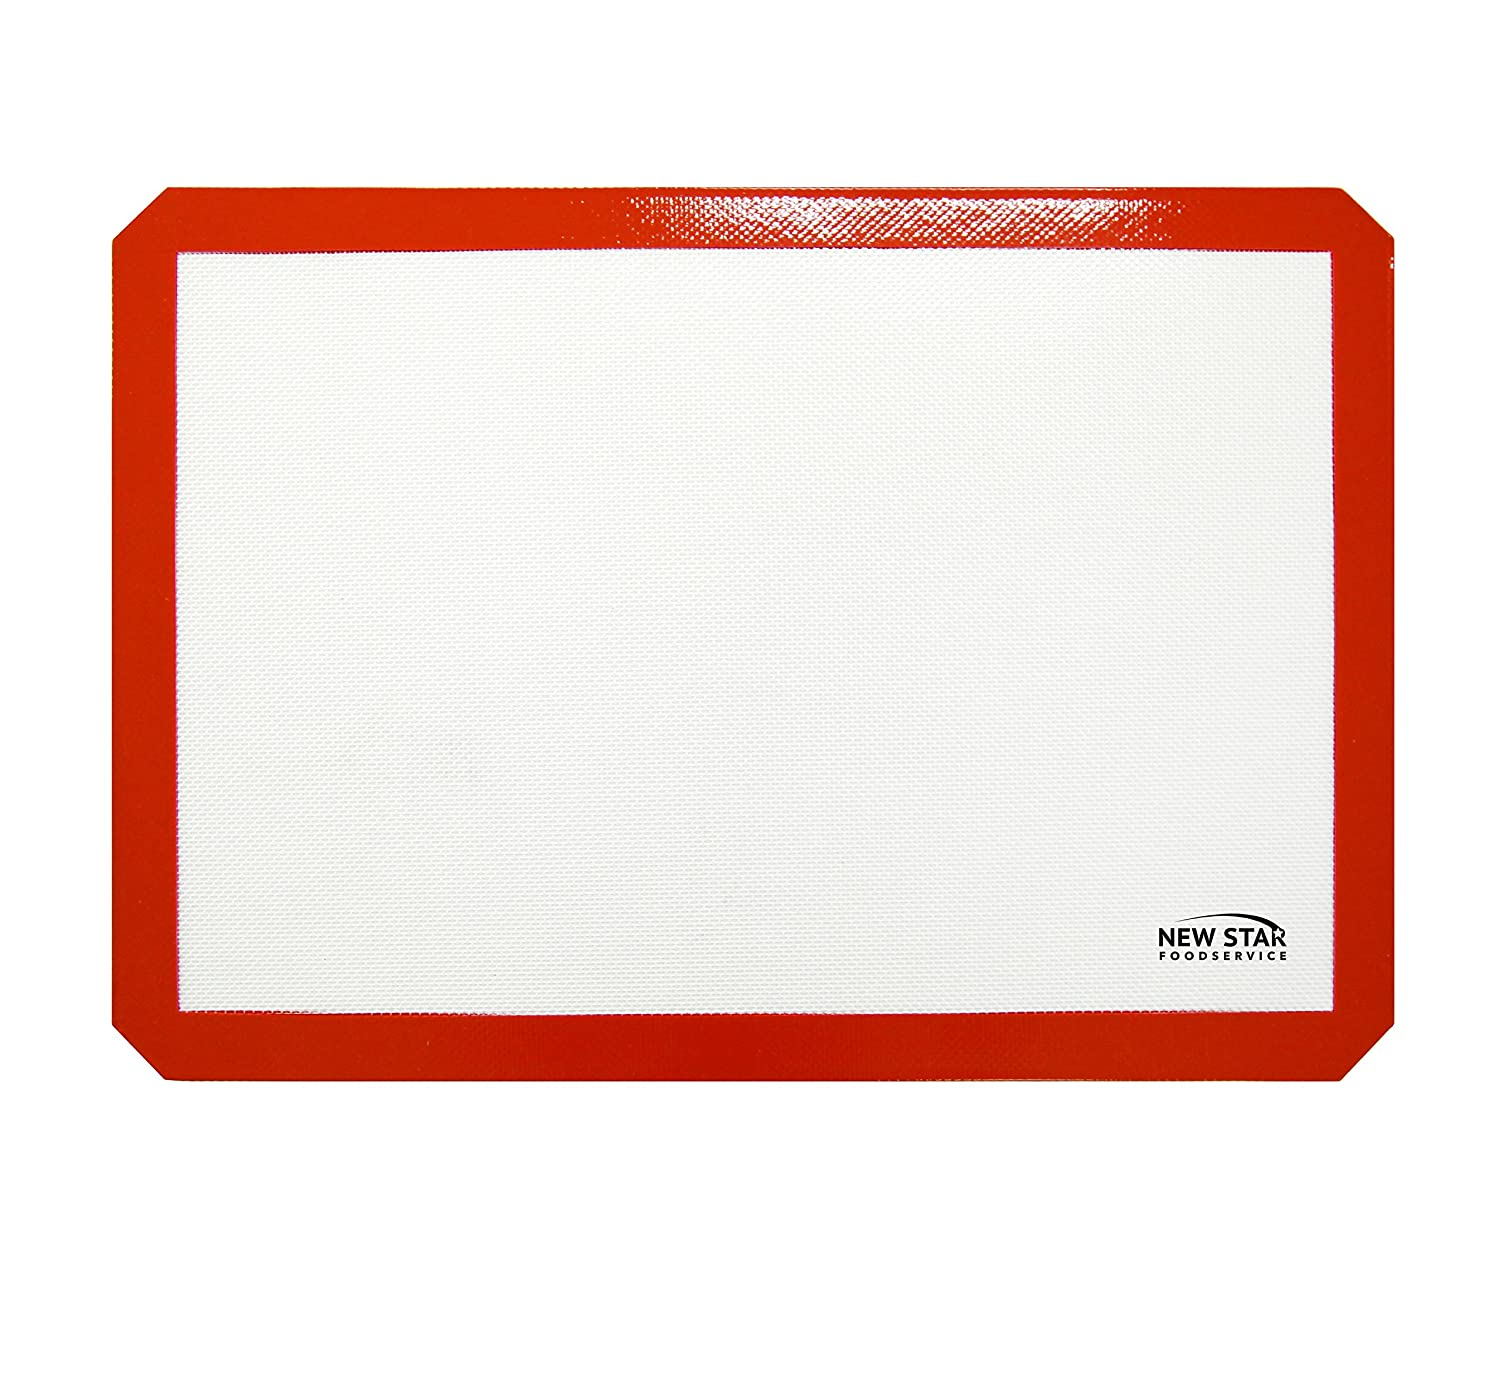 New Star Foodservice 36633 Commercial Grade Silicone Baking Mat Non-Stick Pan Liner, 8 x 12 inch (Quarter Size)